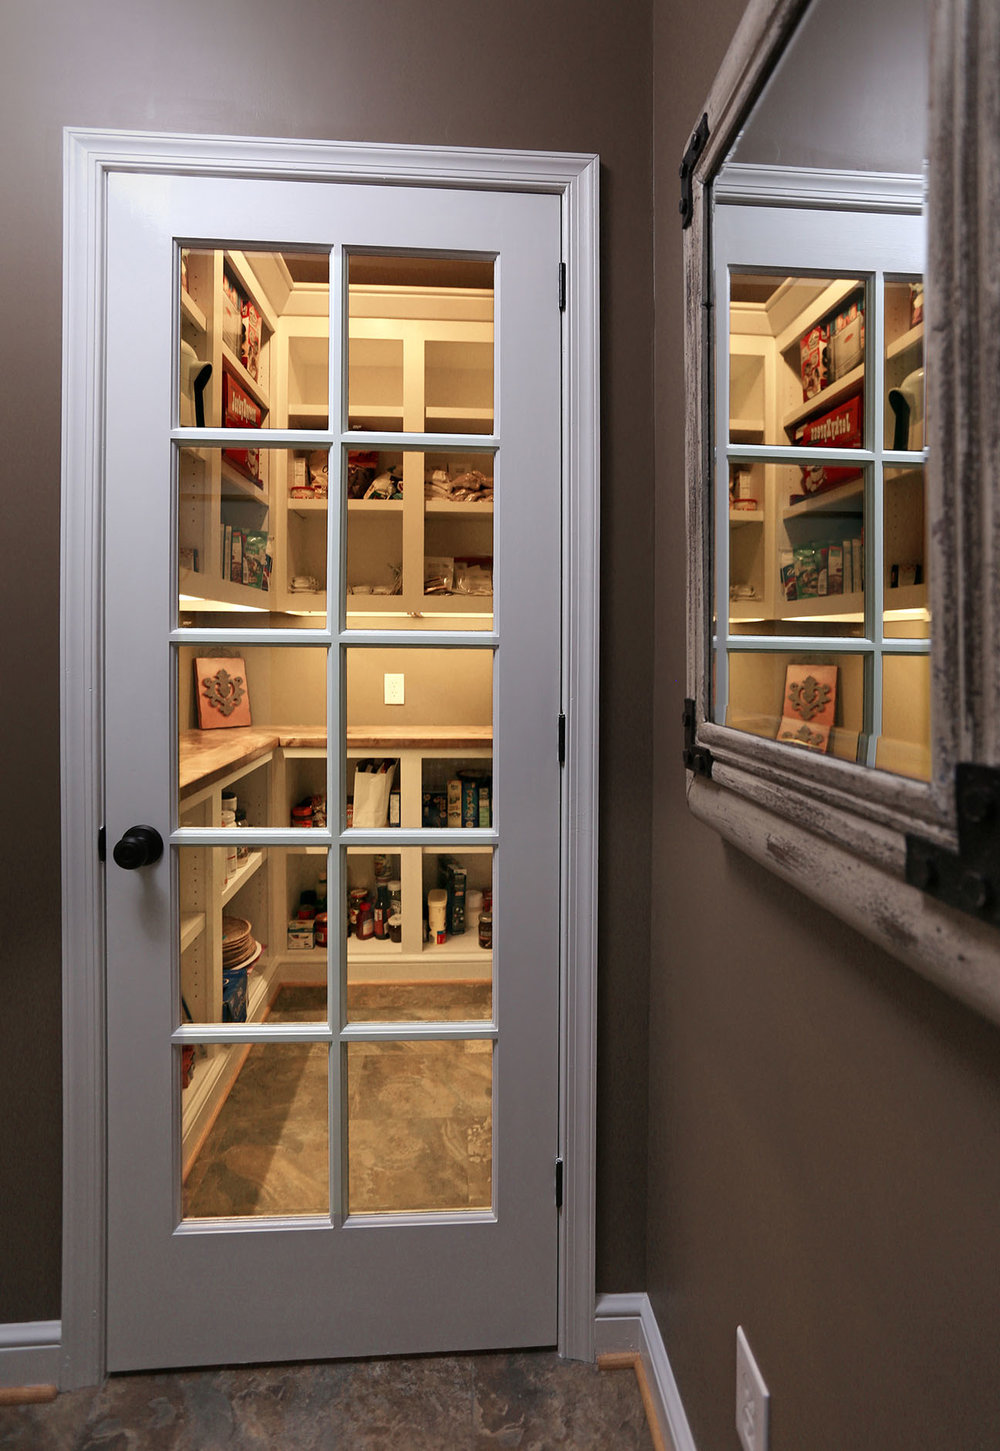 Just off the mudroom is a pantry that I fit out as the second half of this project. The pantry has a 10-lite french door and an occupancy sensor that turns on the overhead and under-cabinet lights automatically.